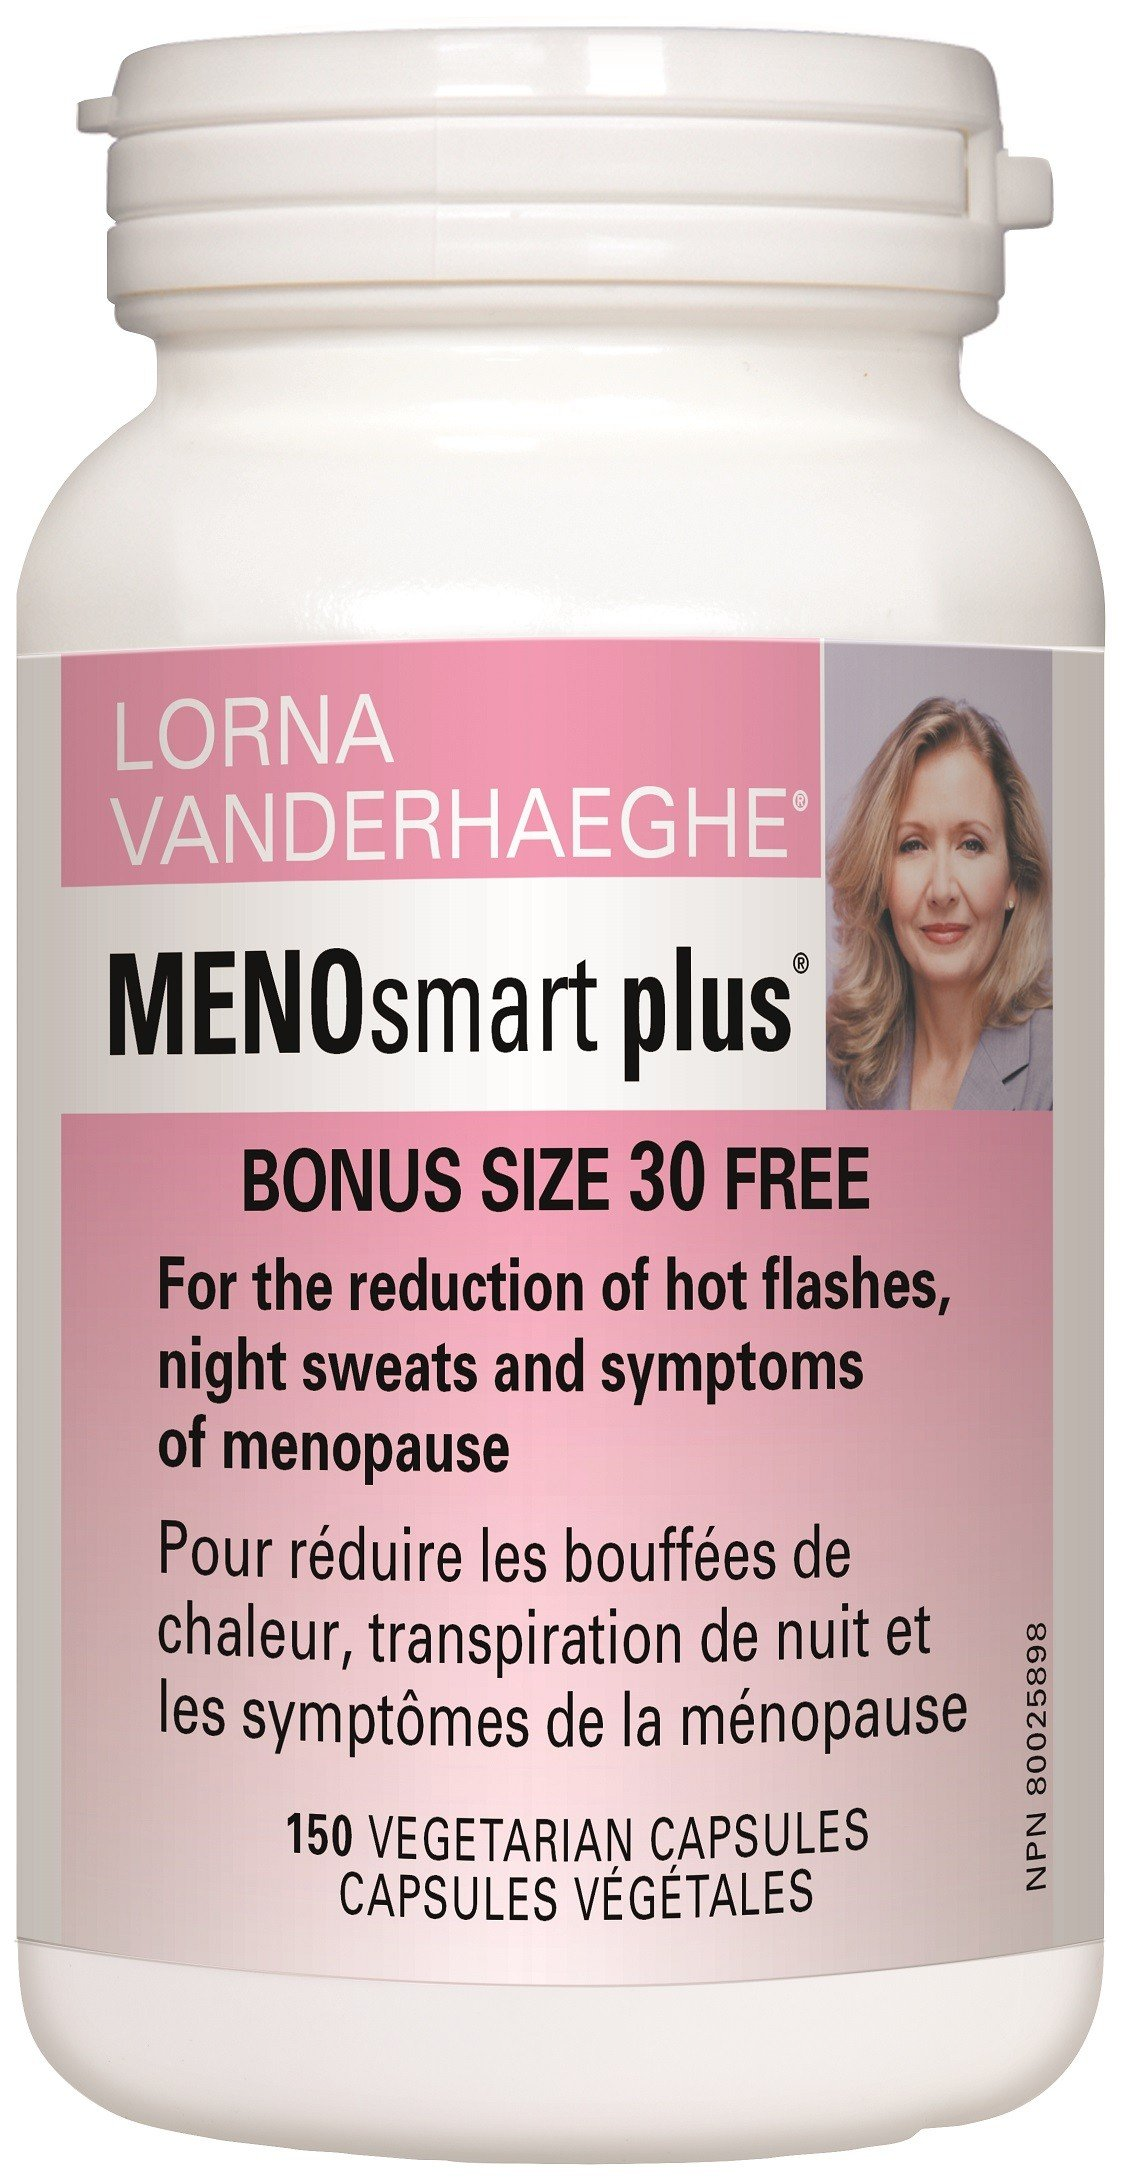 Lorna VanderhaegheMENOsmart Plus Can Relieve Your Menopause Symptoms